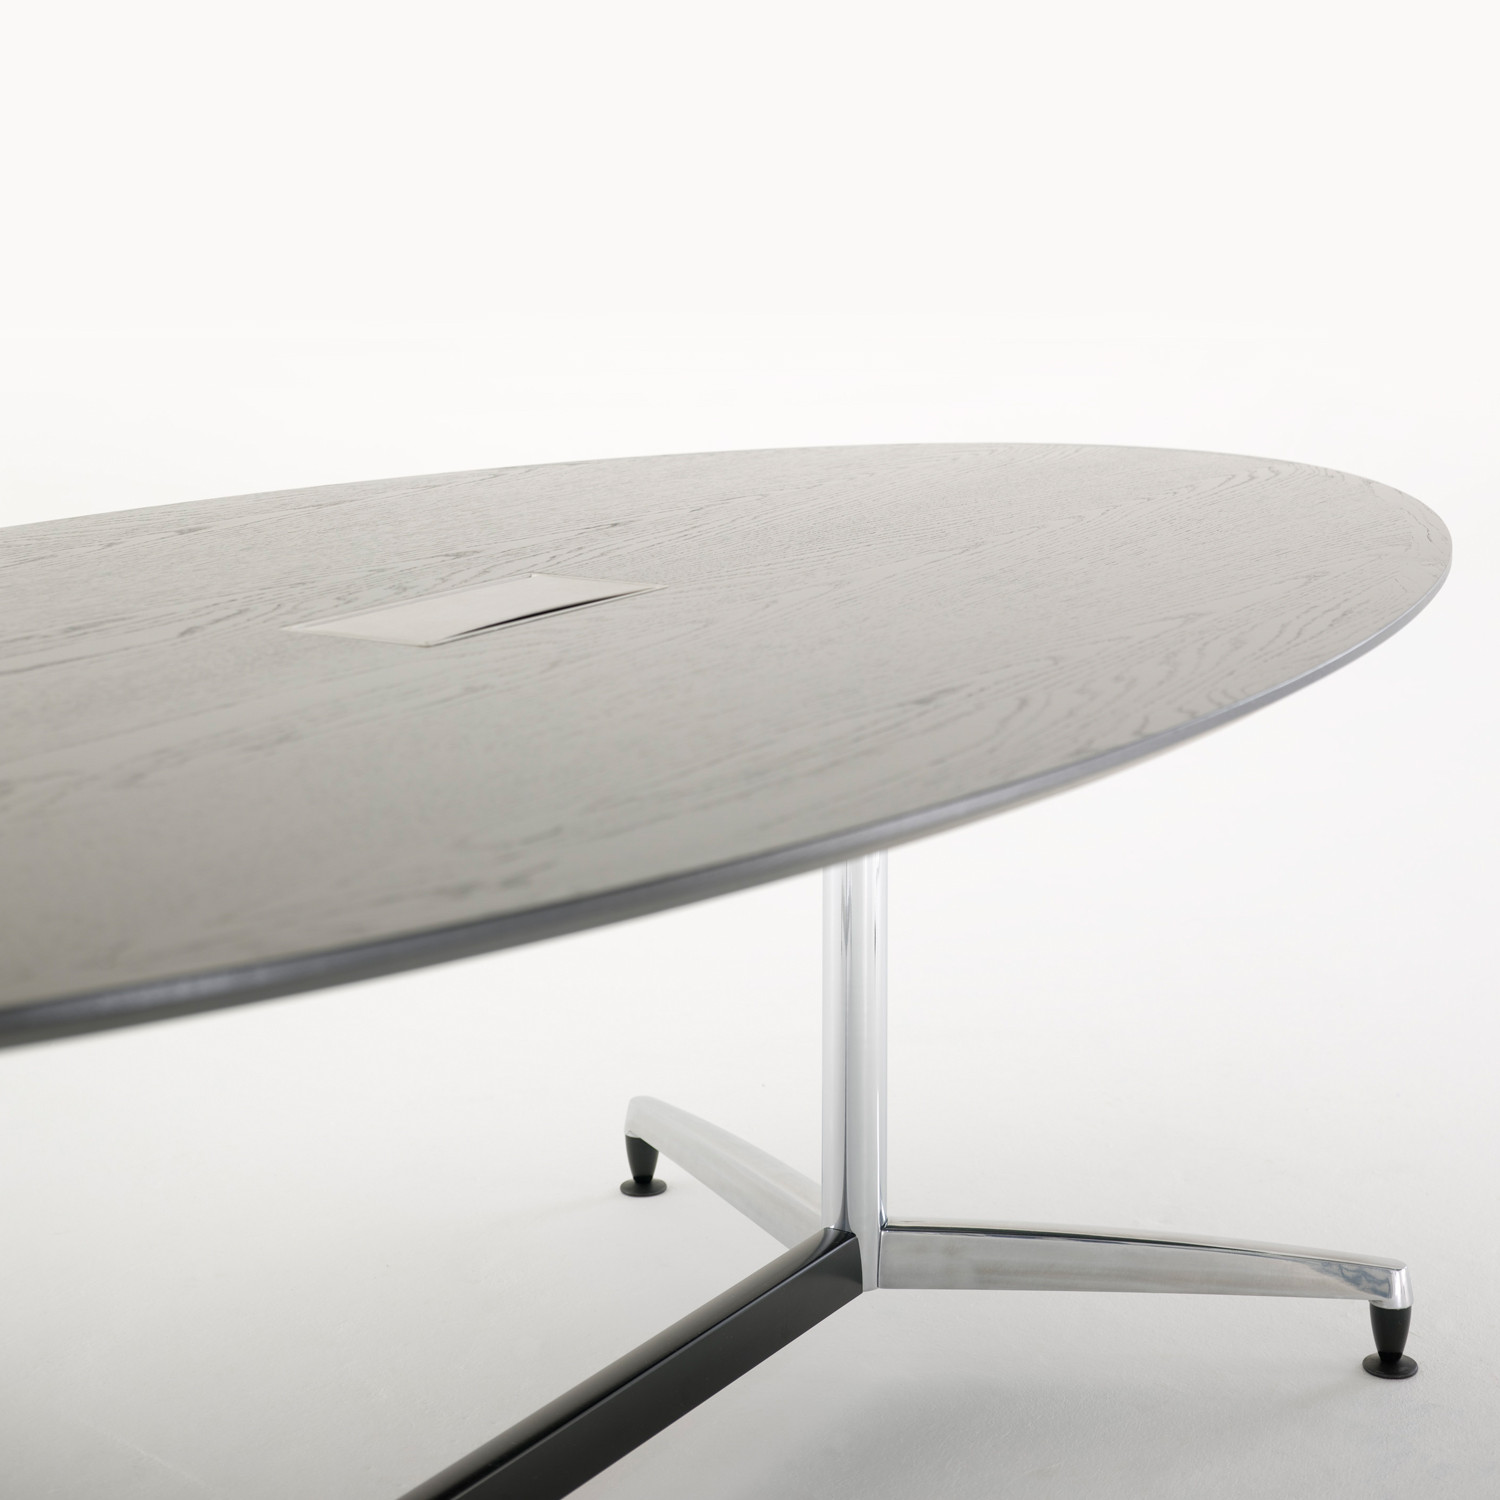 Nimbus oval table